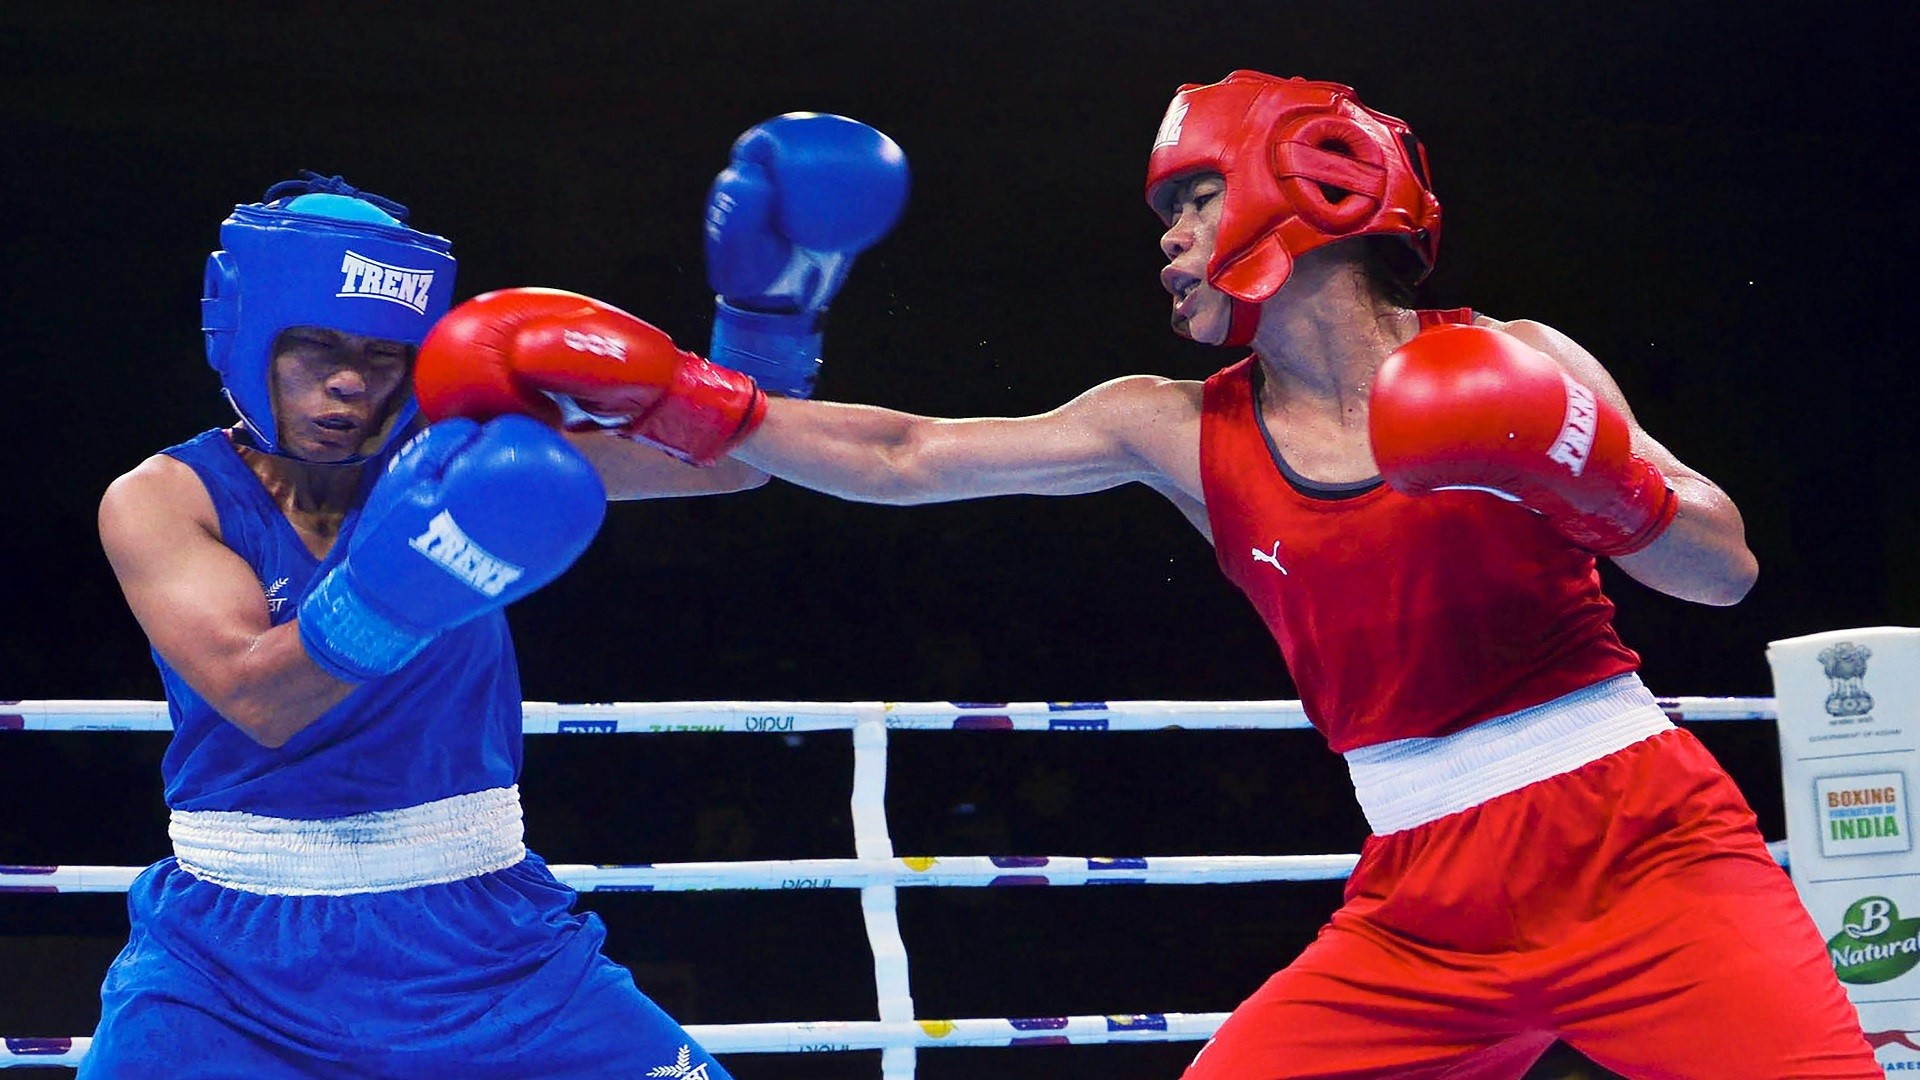 https://lockerroom.in/blog/view/Olympic-Camp-Indian-Boxing